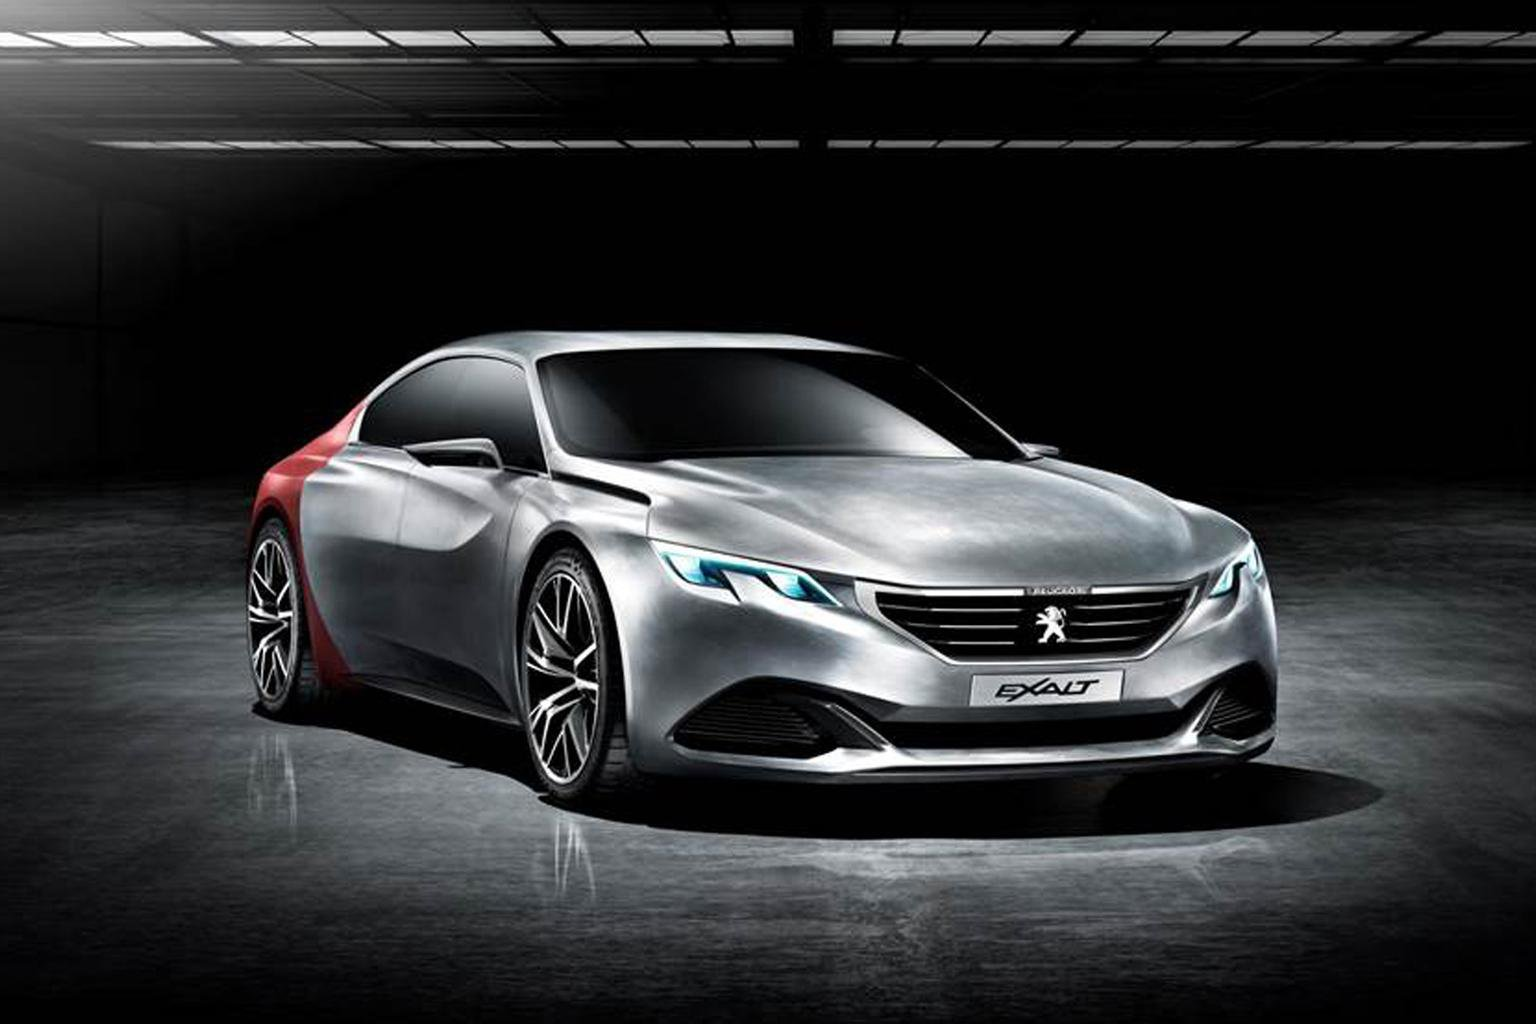 Peugeot Exalt concept showcases vision for luxury cars